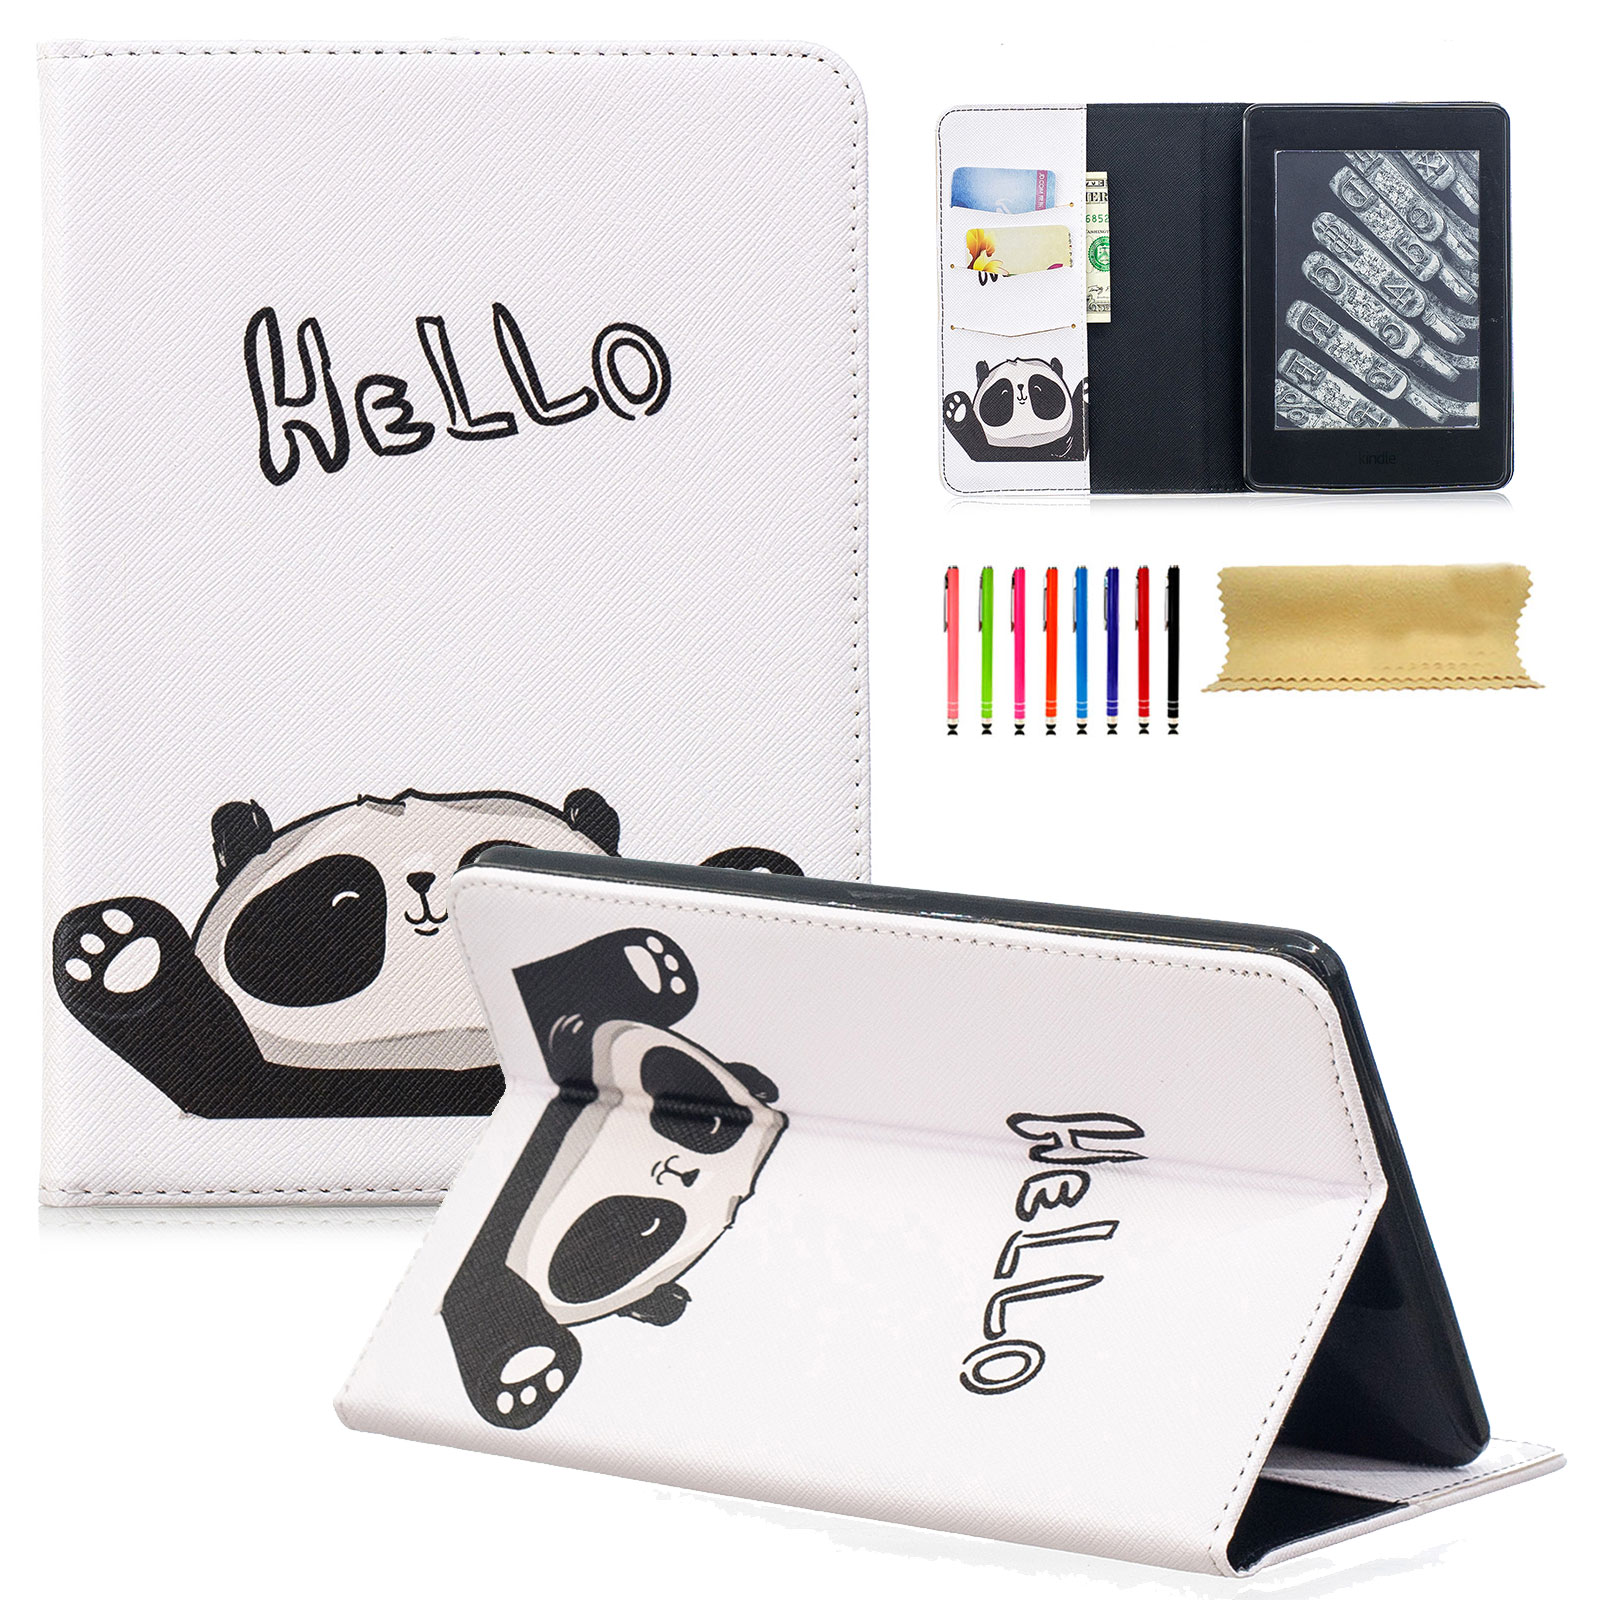 Goodest SlimShell Case for Kindle Paperwhite 3/2/1, The PU Leather Cover Auto Sleep/Wake for All-New Amazon Kindle Paperwhite (Fits All 2012, 2013, 2014, 2015 and 2016 Versions), Hello Panda